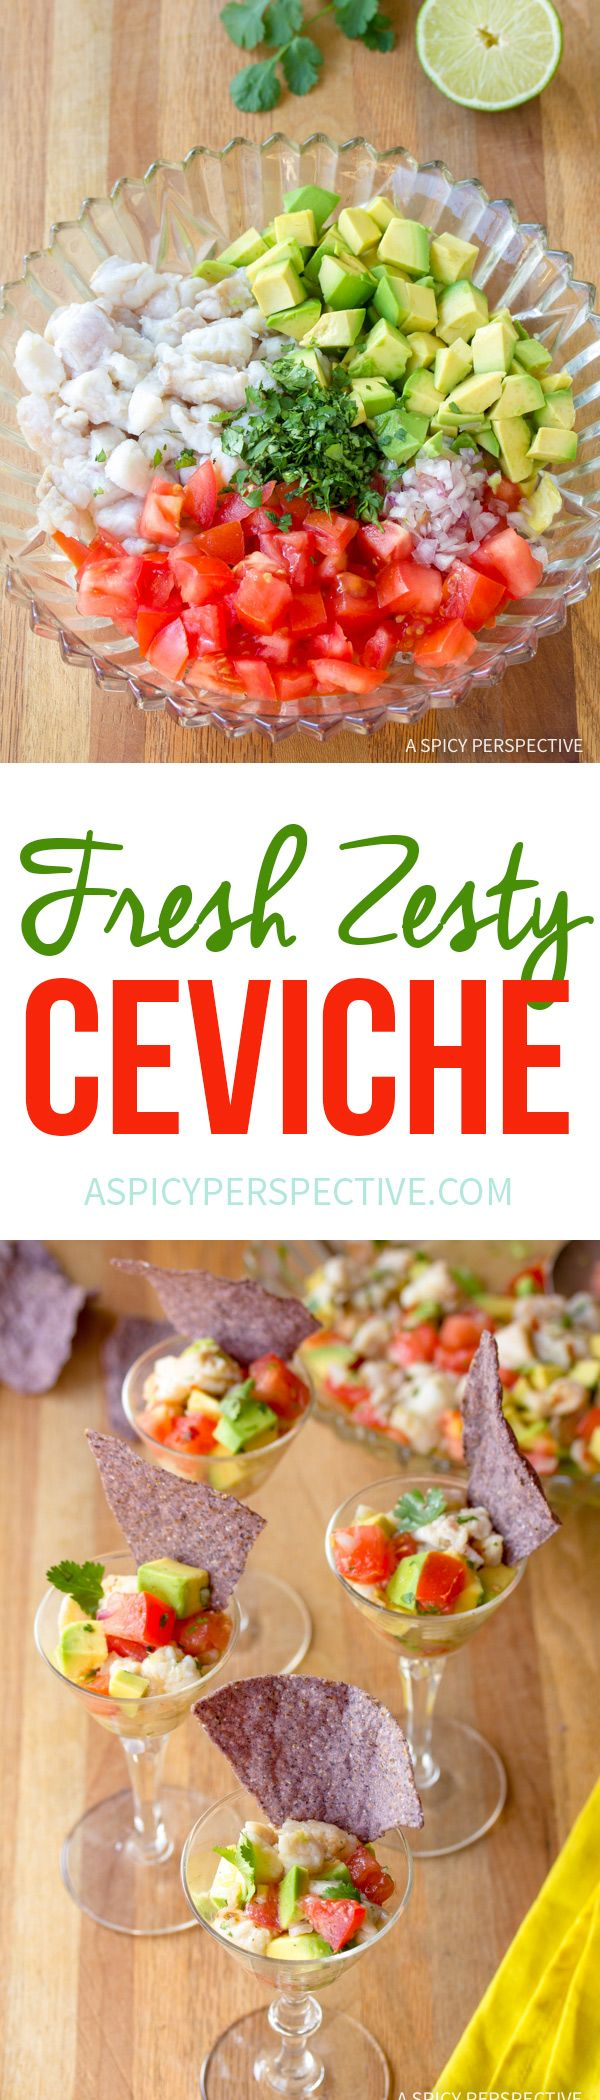 Zesty Classic Ceviche Recipe #healthy #lowcarb #paleo via @spicyperspectiv